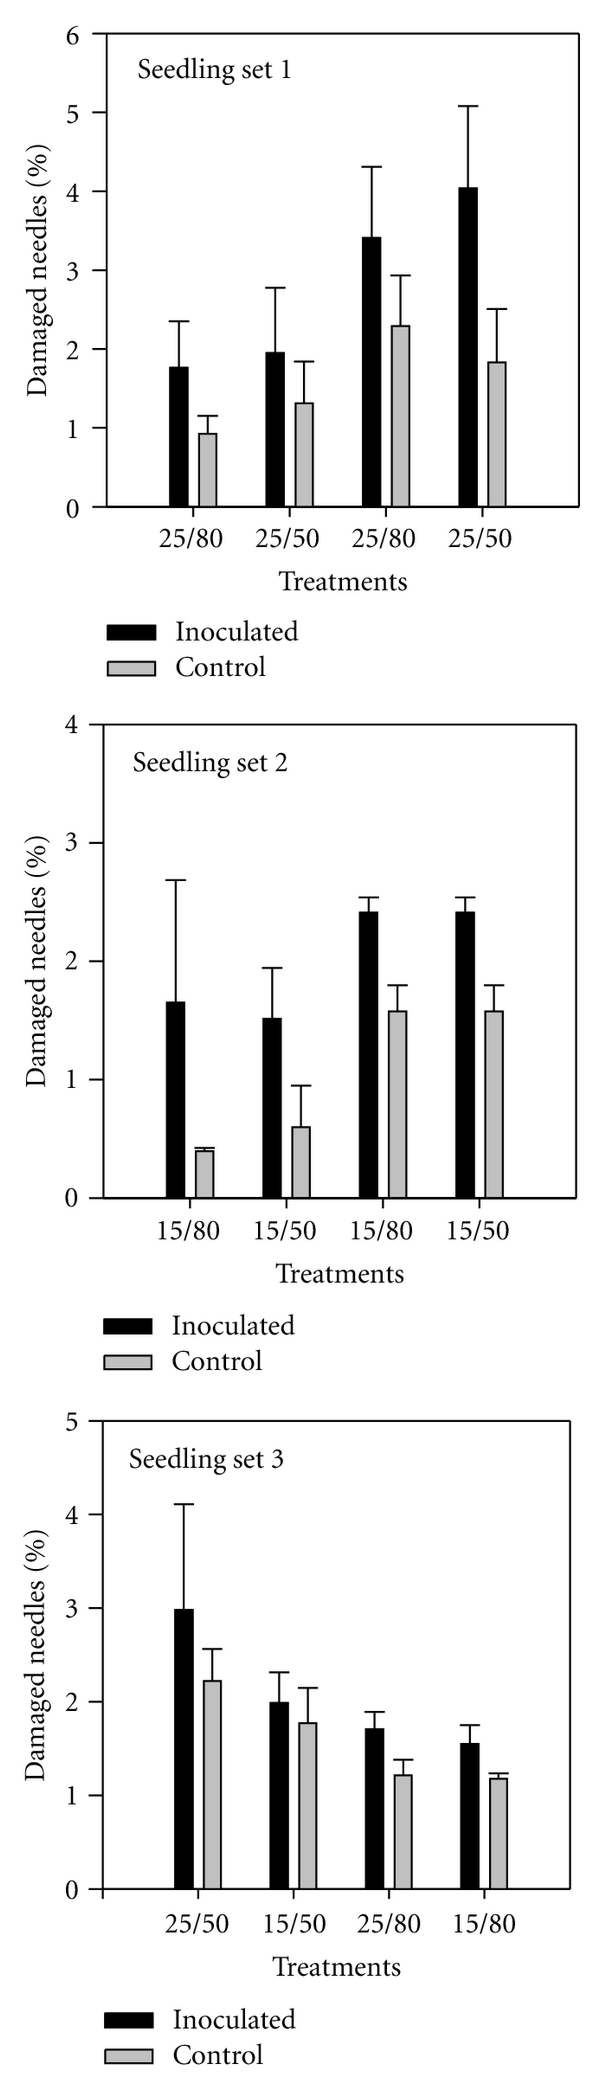 810675.fig.002a